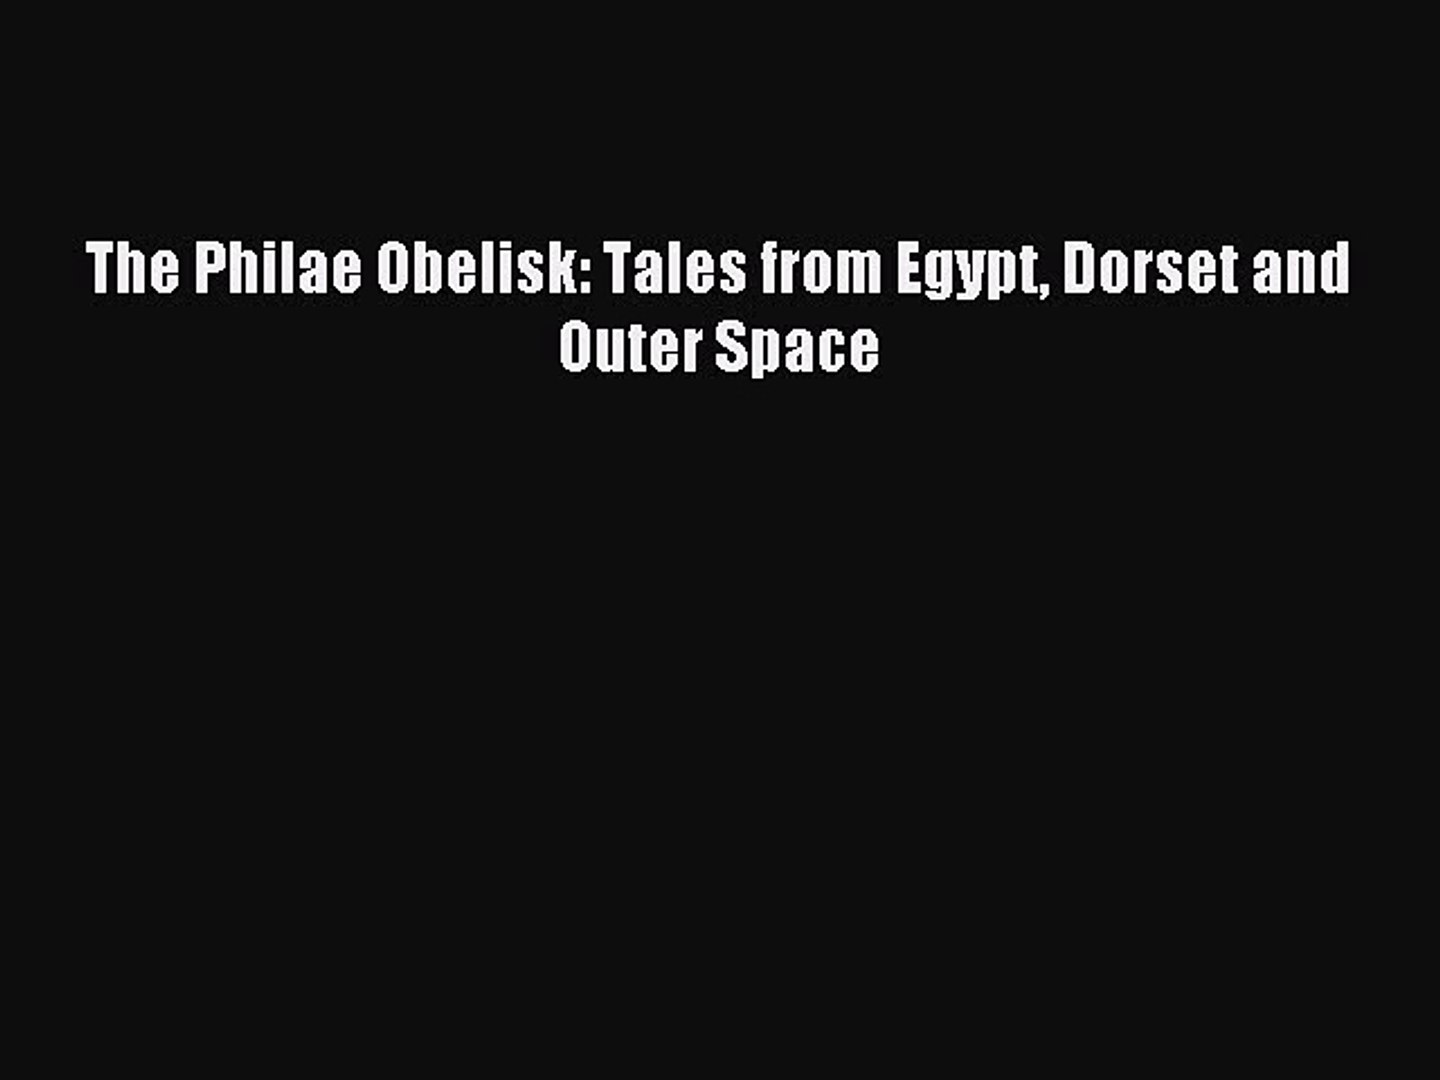 [PDF] The Philae Obelisk: Tales from Egypt Dorset and Outer Space [Read] Full Ebook